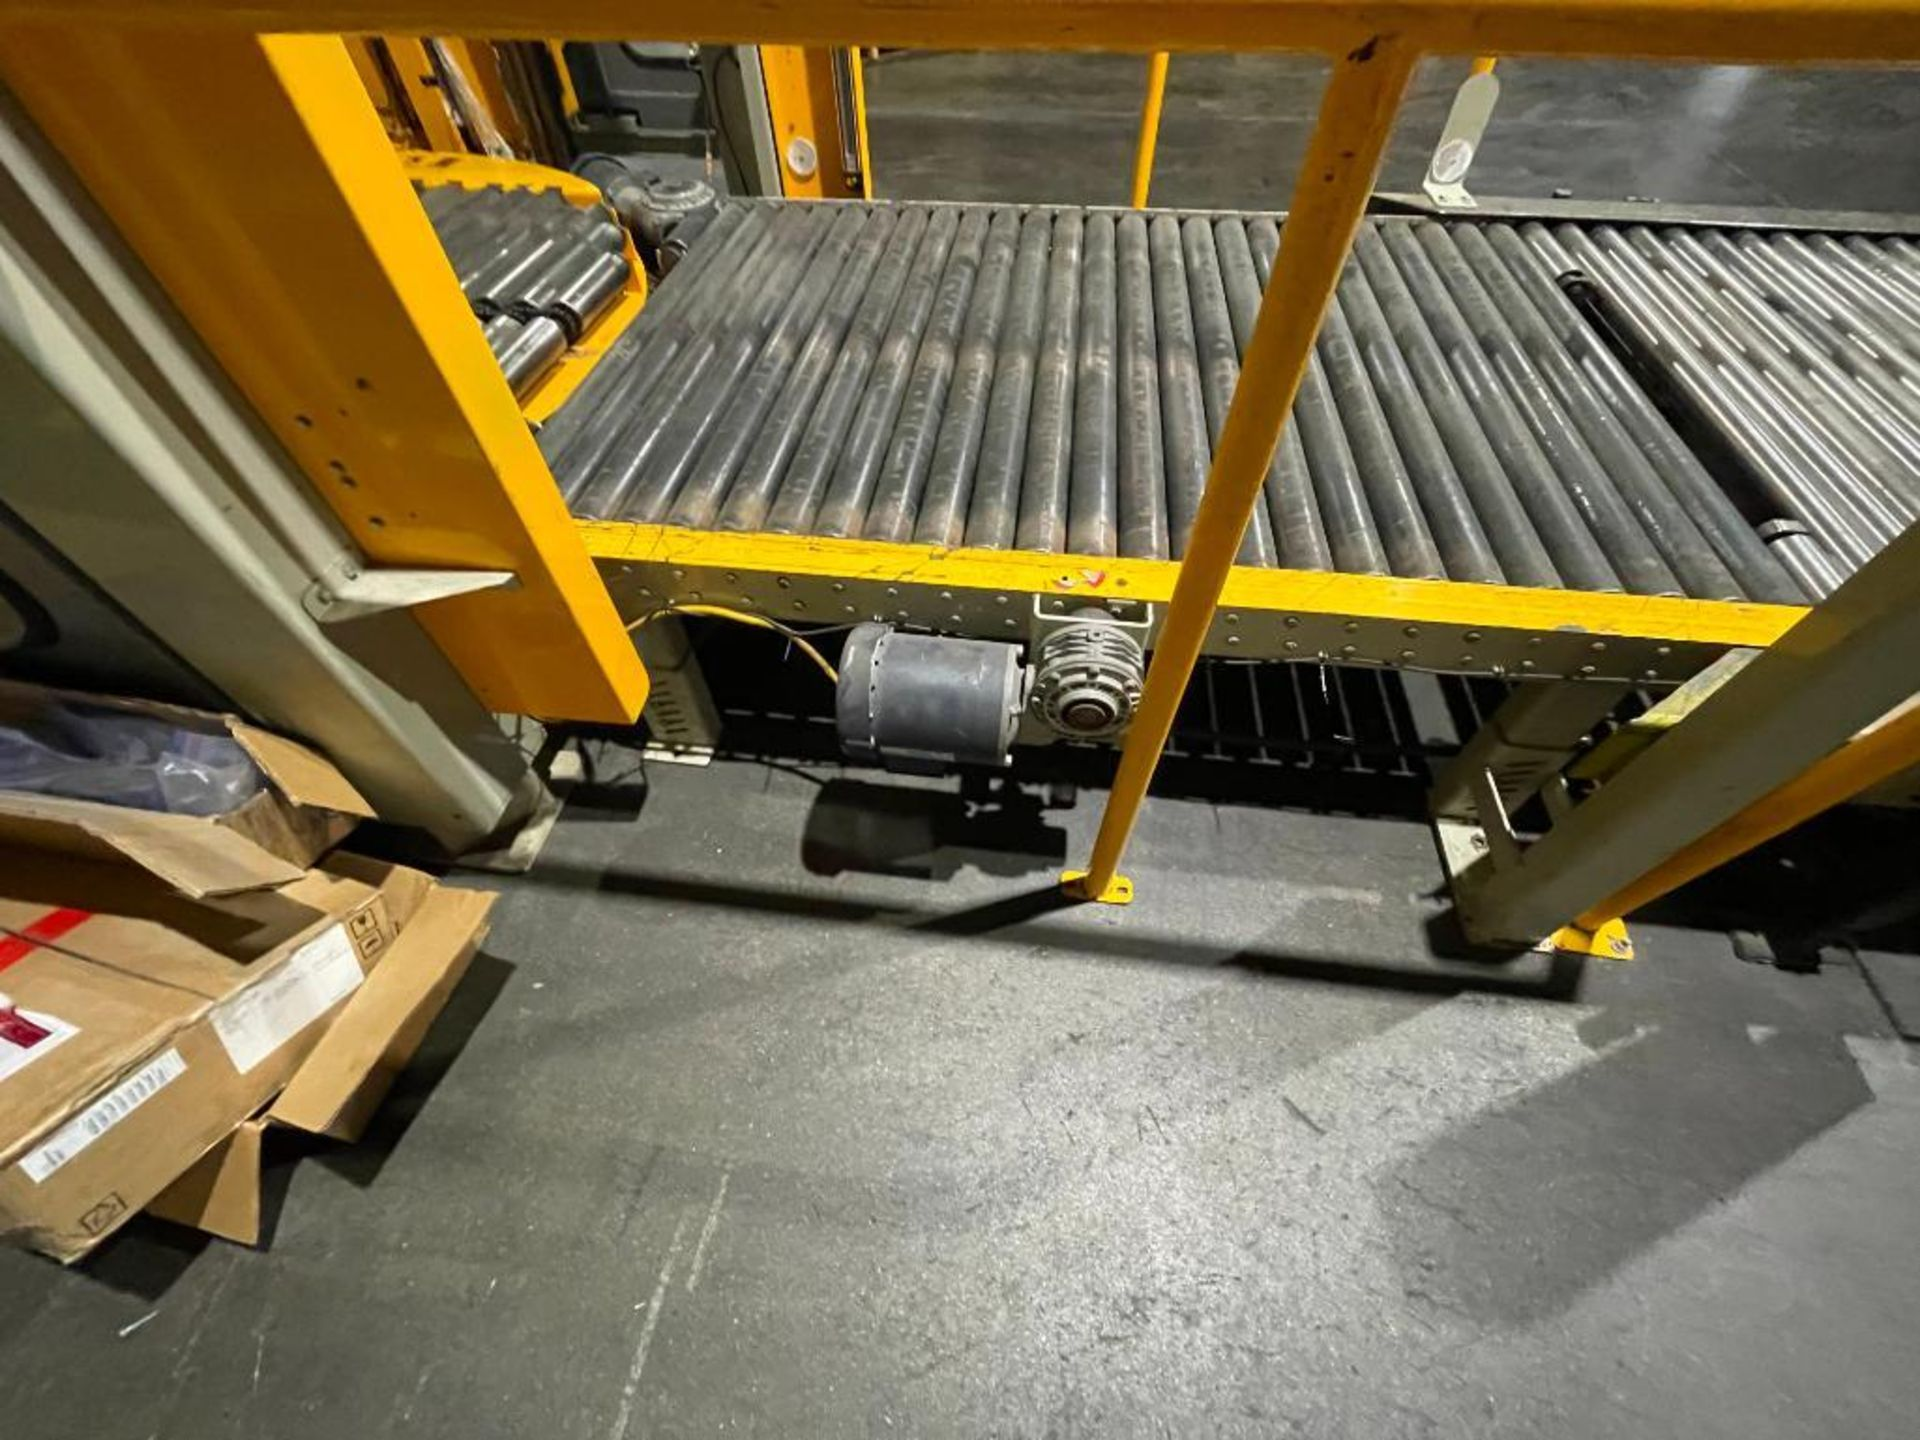 2013 TopTier downstacker, model DS with integrated TopTier pallet wrapper - Image 7 of 66